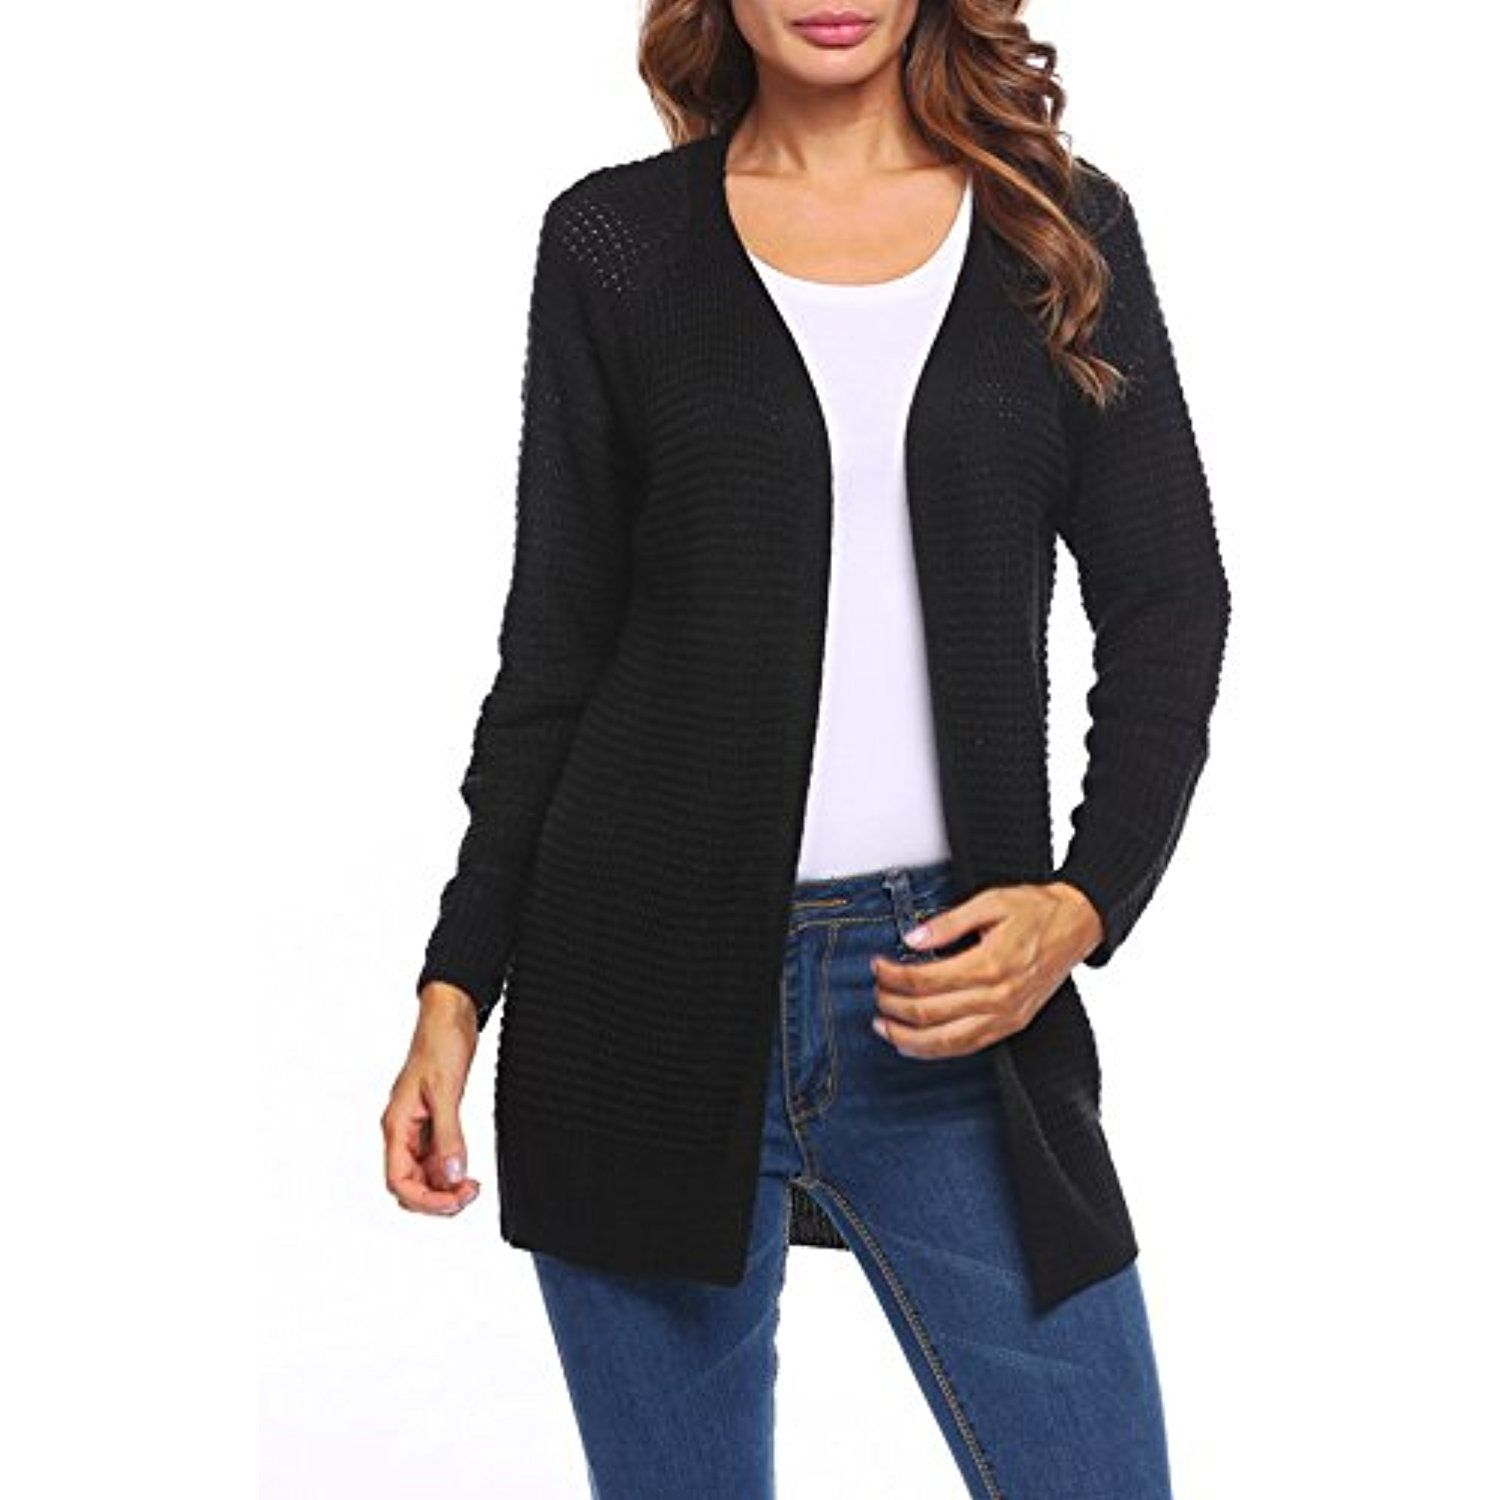 Women's Casual Long Sleeve Open Front Solid Drape Knitted Cardigan ...